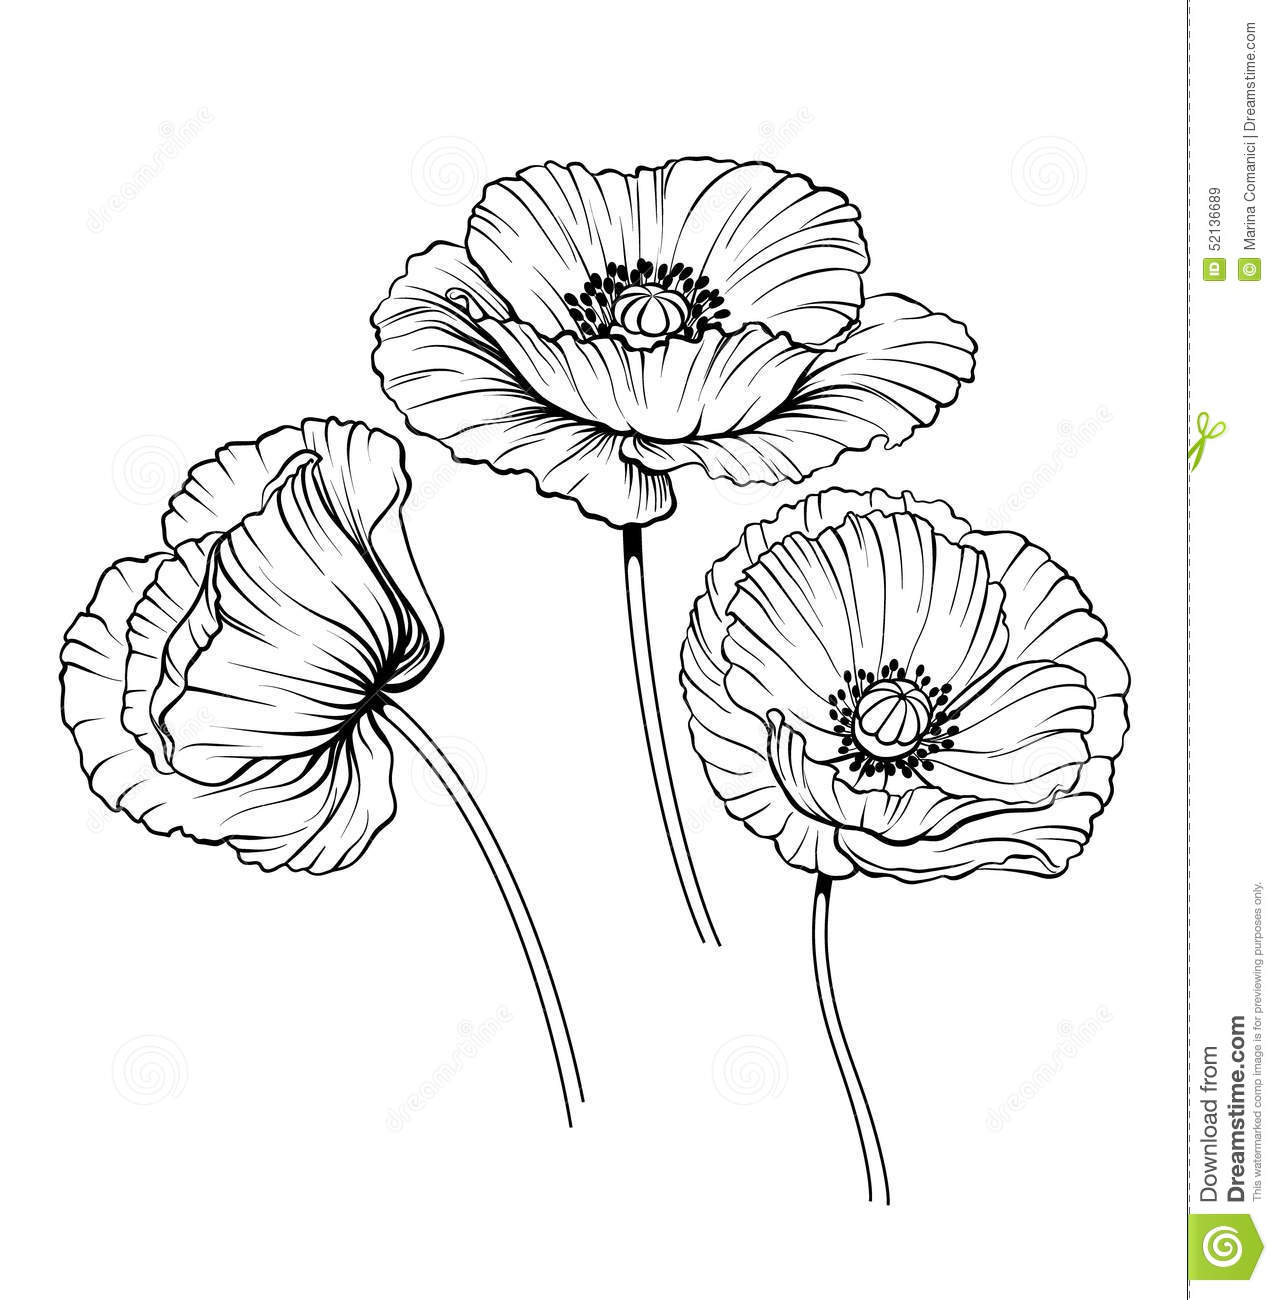 Poppy Drawing At Getdrawings Free For Personal Use Poppy